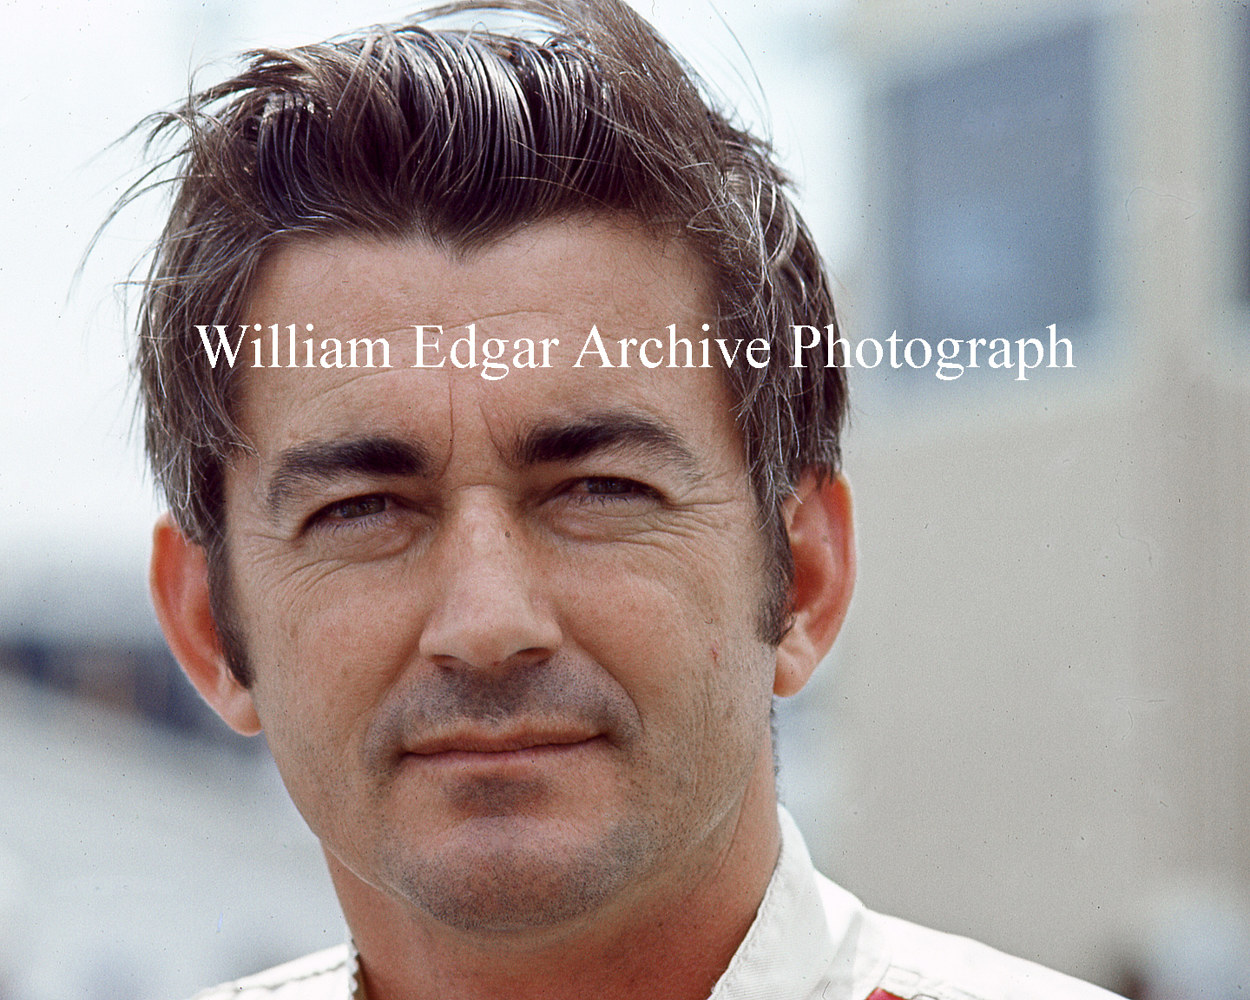 Photography [RI-BAPAD] Bobby Allison at NASCAR Rebel 400 - Darlington Raceway, South Carolina - May 2, 1971 by William Edgar